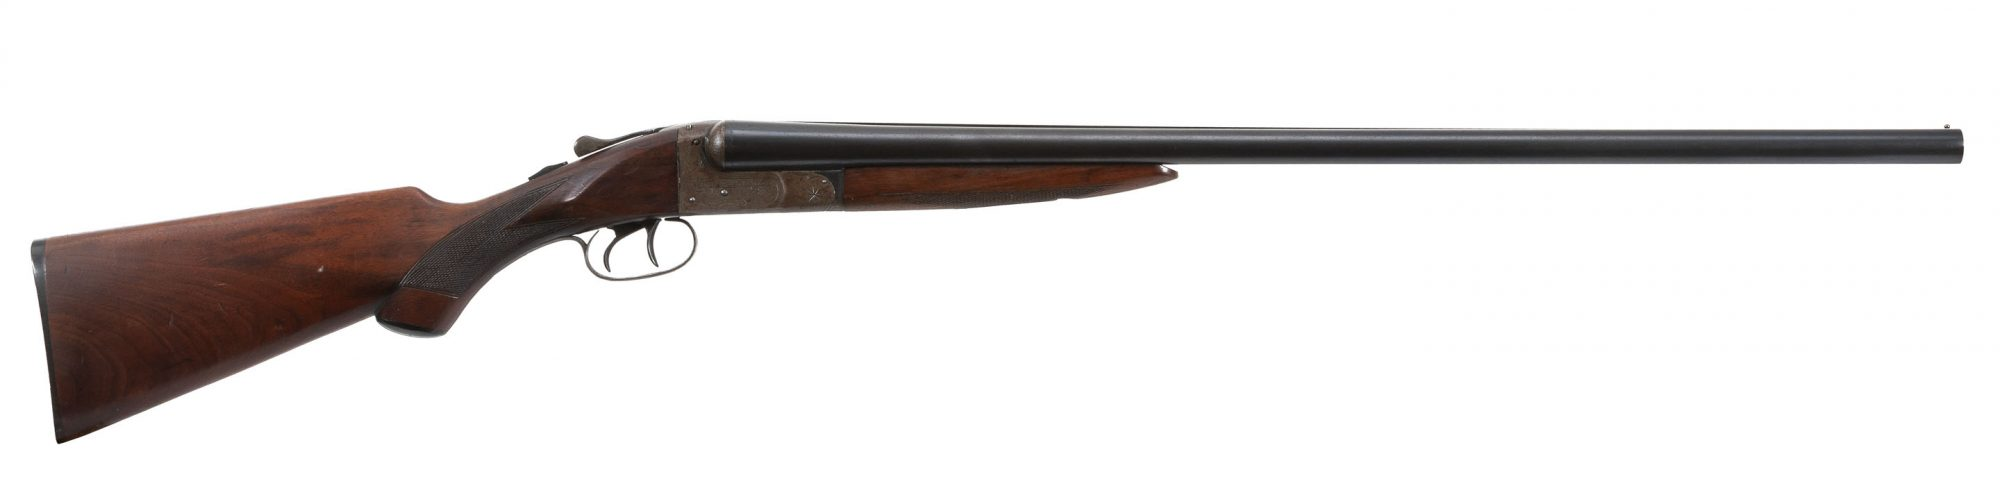 Photo of a pre-owned Ithaca Flues 12 gauge side by side shotgun, for sale by Turnbull Restoration of Bloomfield, NY